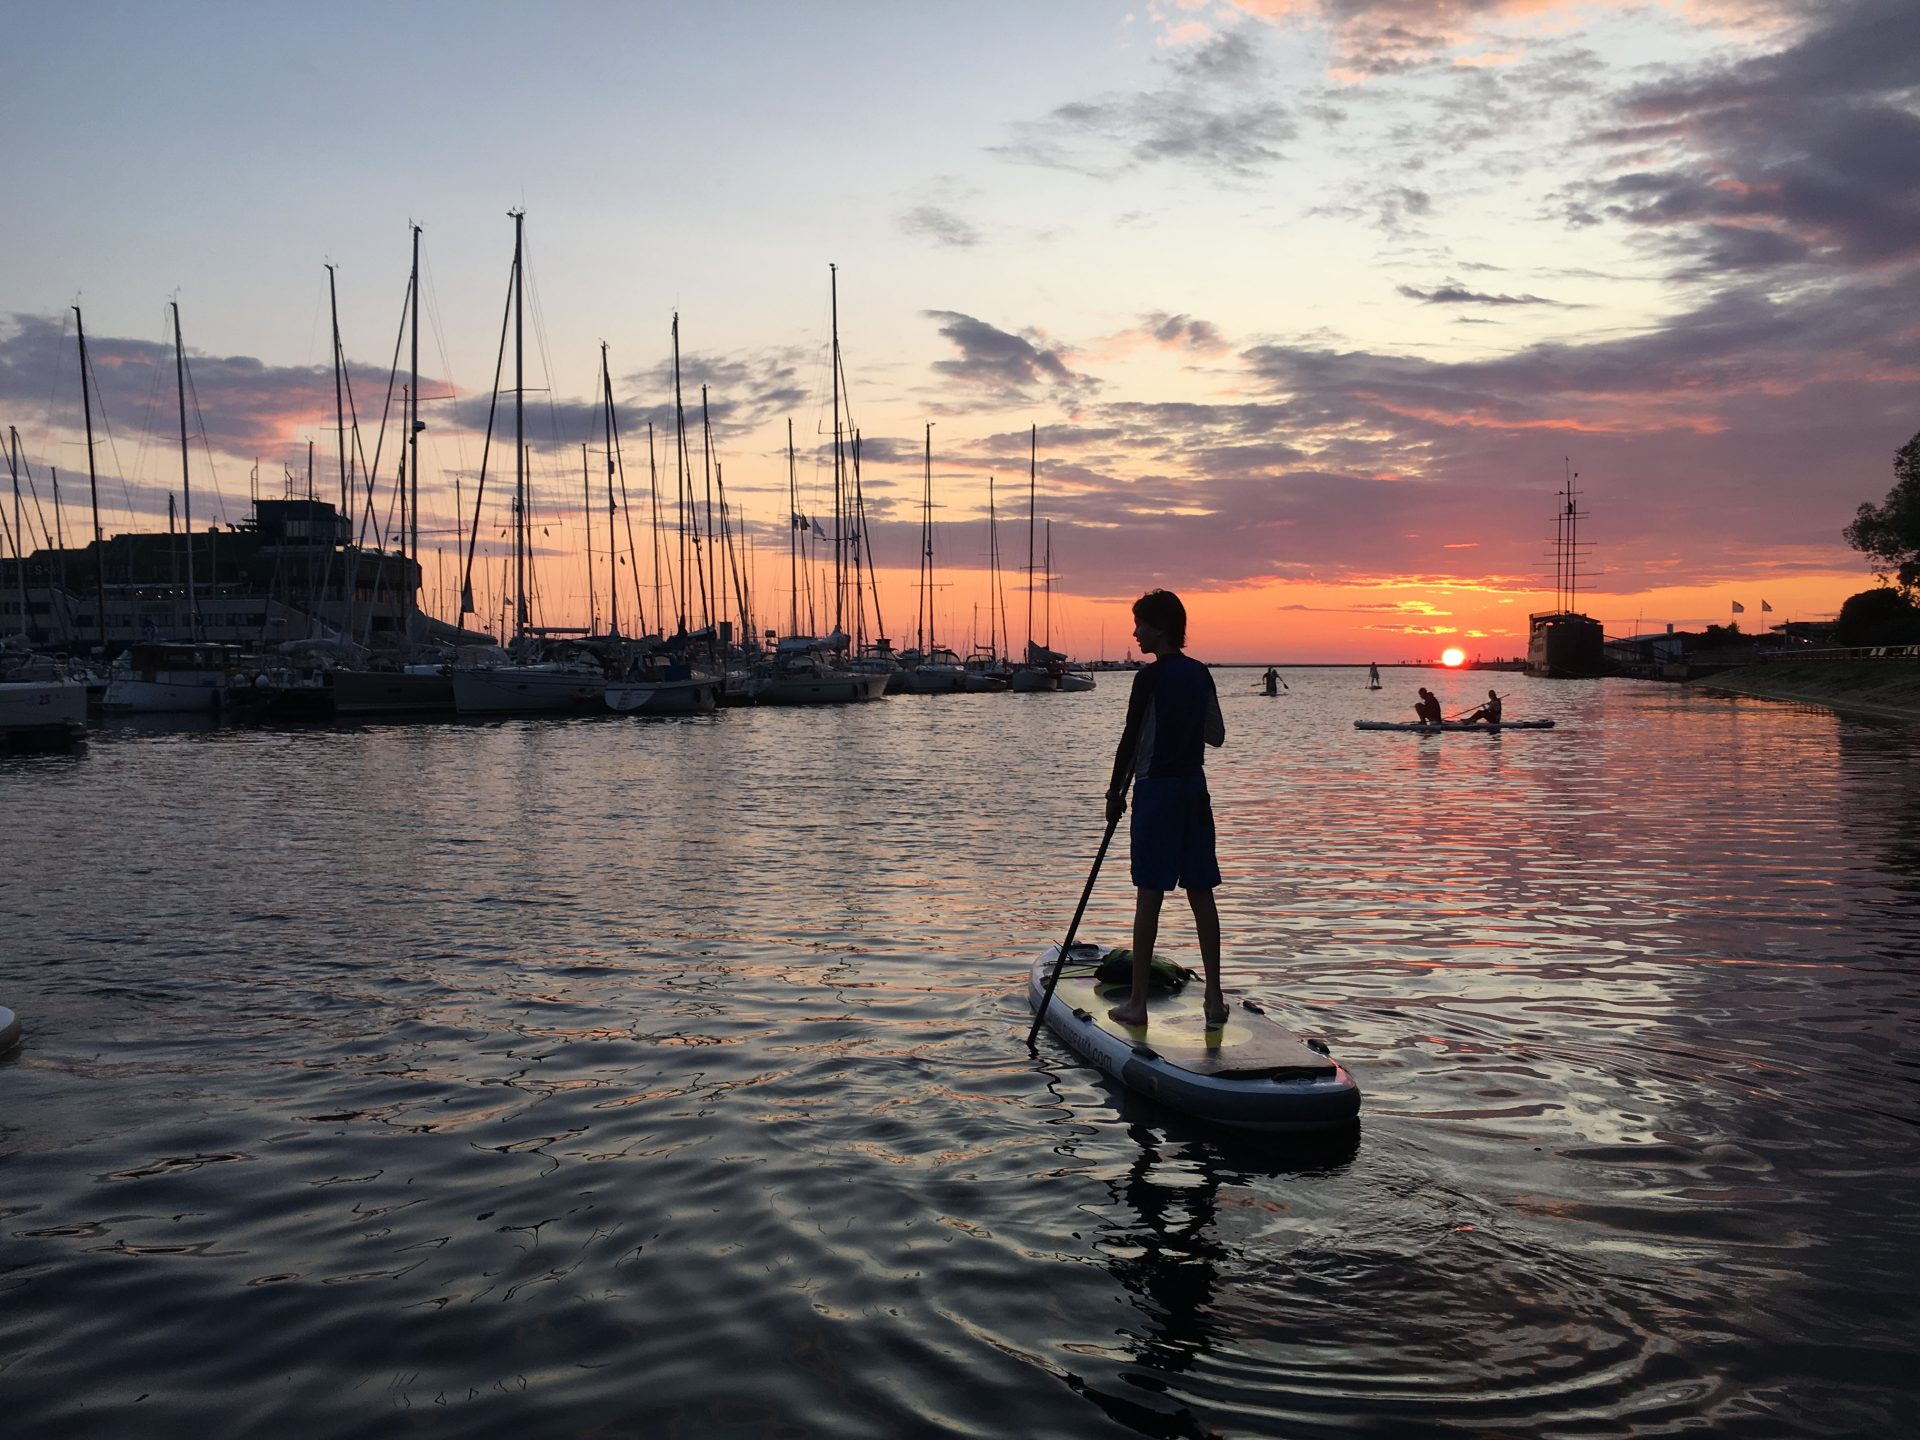 Tallinn sightseeing should include paddleboarding into the sunset